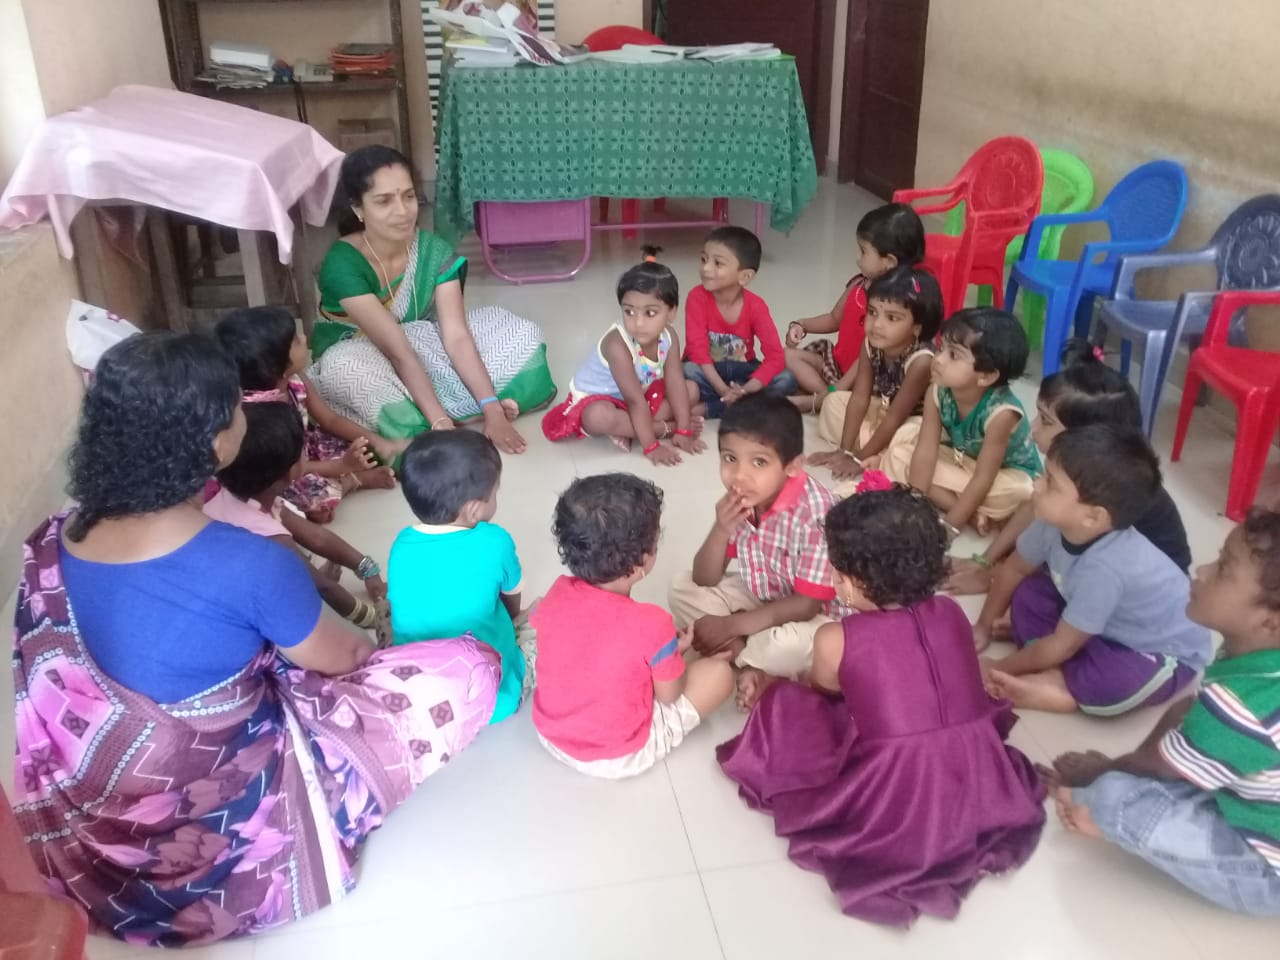 No Work For Home For India's Grassroot Health Workers – Anganwadi Workers, ASHAs And ANMs – Even During COVID-19